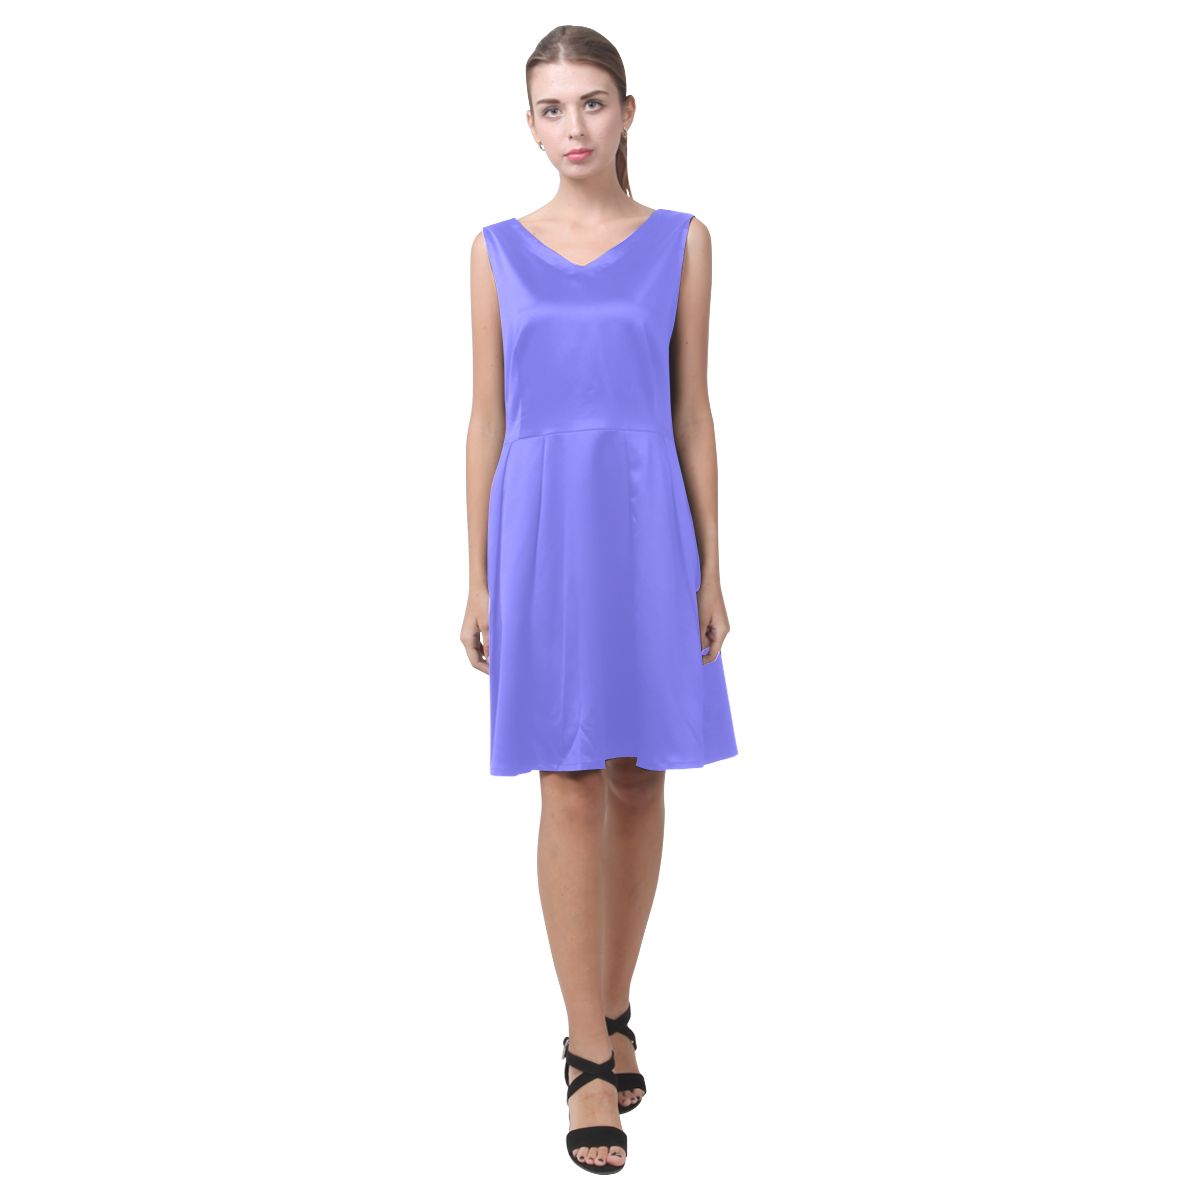 Periwinkle Perkiness